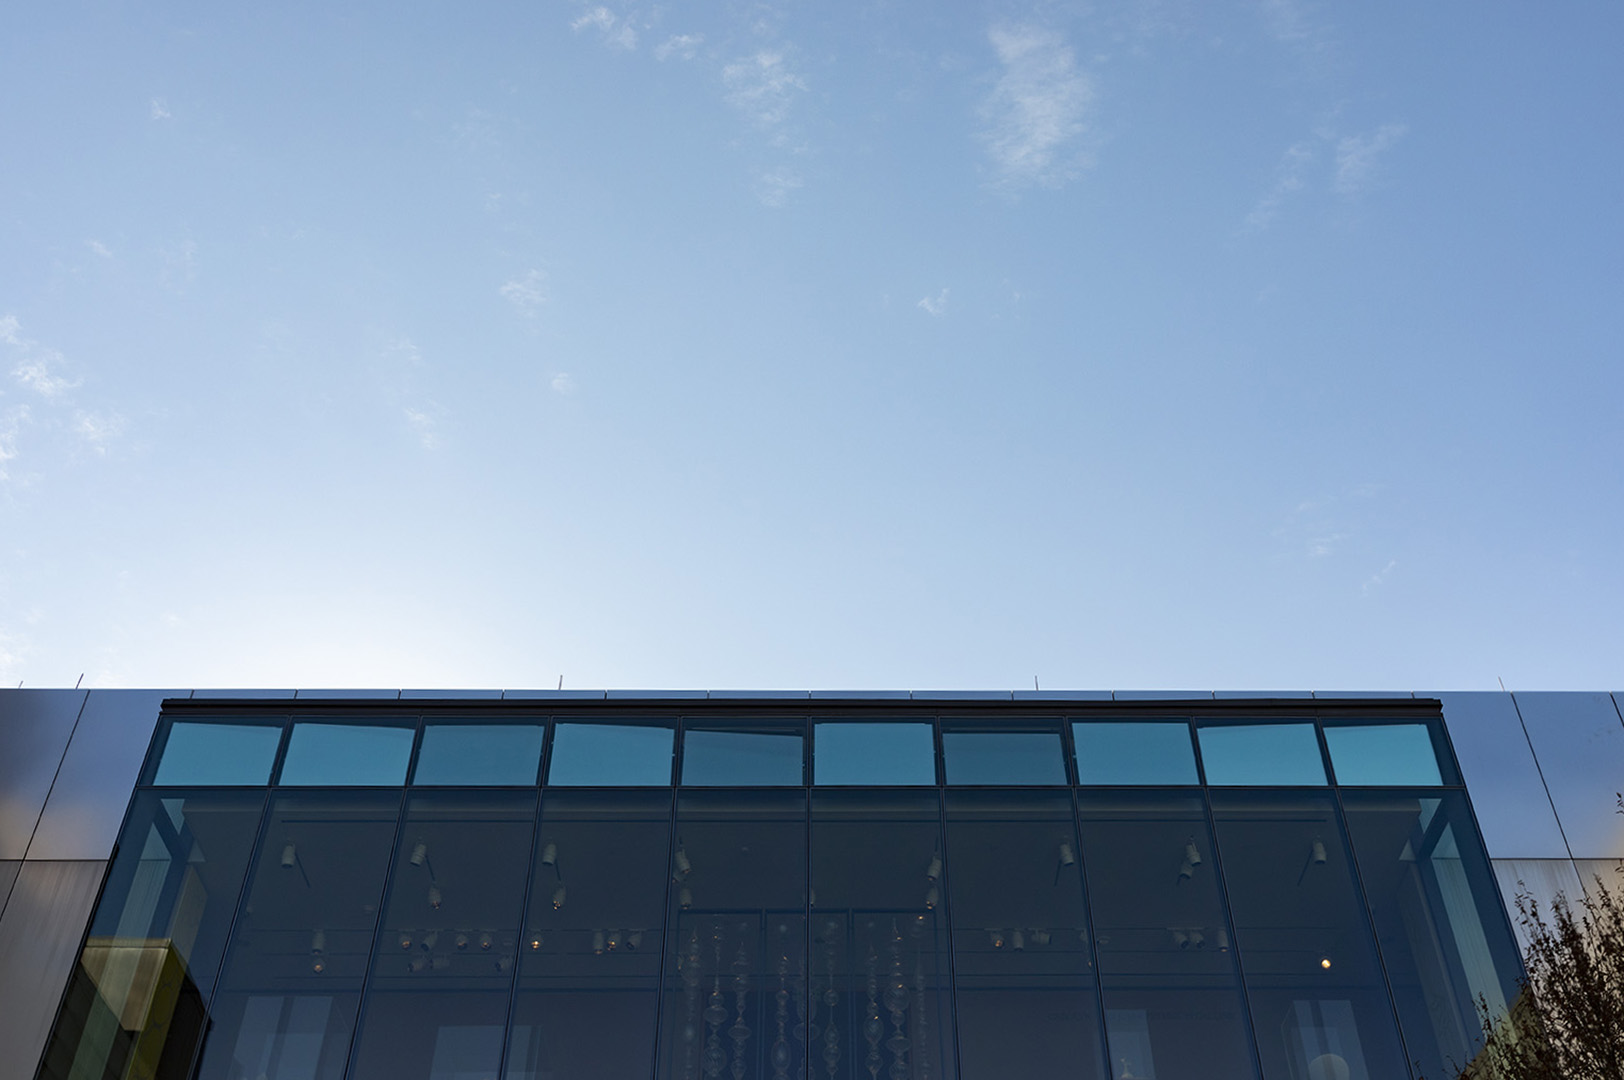 """Image of """"Cloud Text"""" taken from the ground level of the Chazen Museum of Art. The panels of the piece are reflecting the clouds in the sky with different shades of blue."""